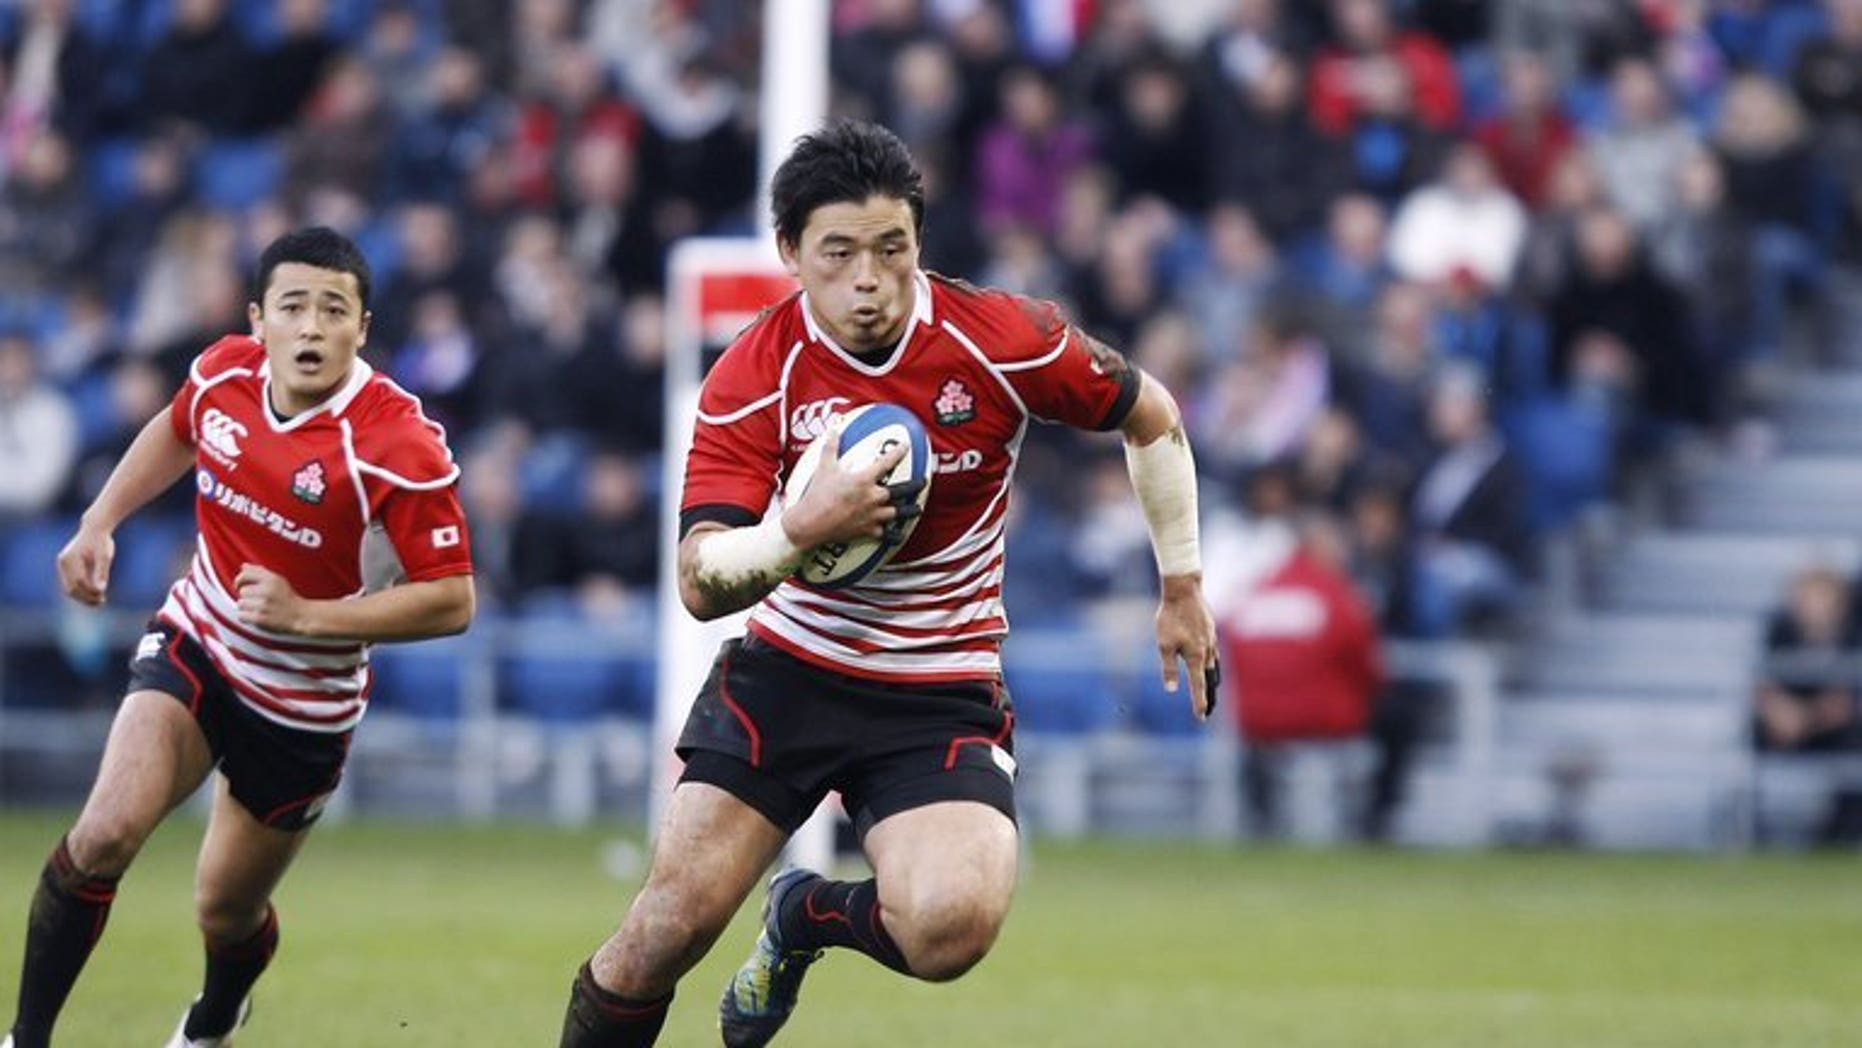 Ayumu Goromaru (centre) plays for Japan against the Barbarians in Le Havre, November 25, 2012. The full back scored all the points to lead Asian champions Japan to a 16-13 victory over Canada in the Pacific Nations Cup rugby tournament in Nagoya on Wednesday.